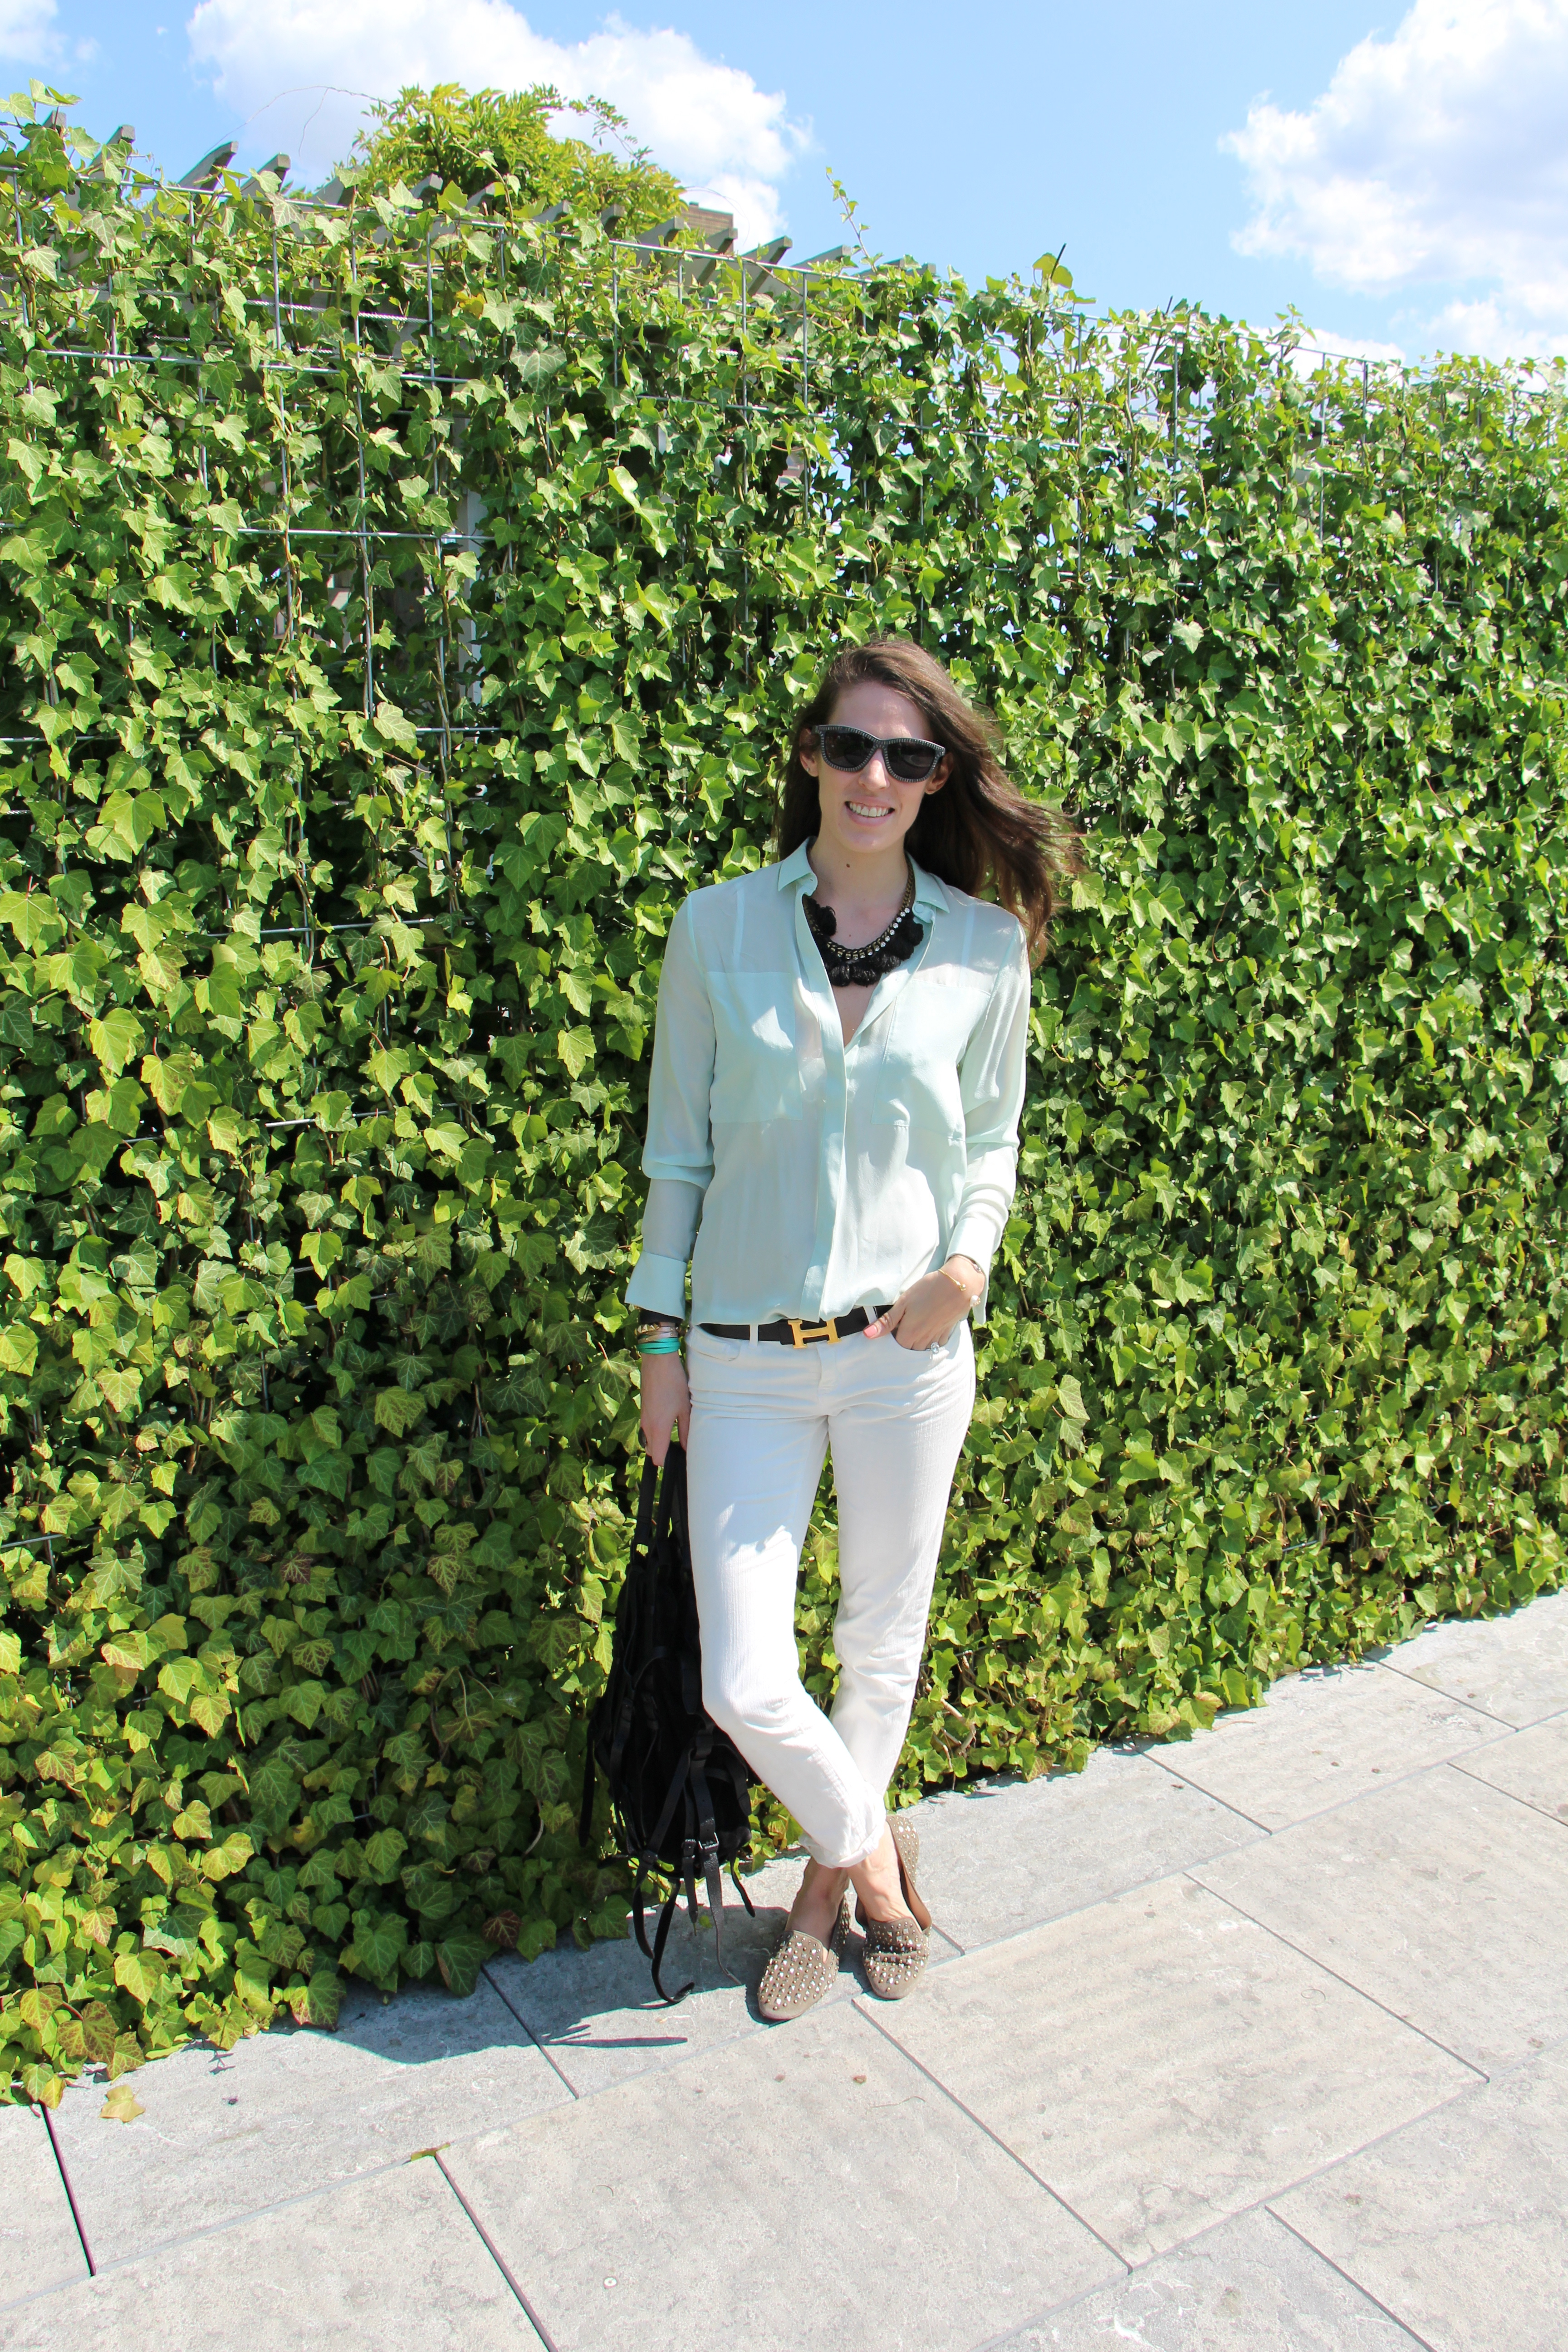 outfit of the day Archives - Accessories Gal Blog by E.Kammeyer